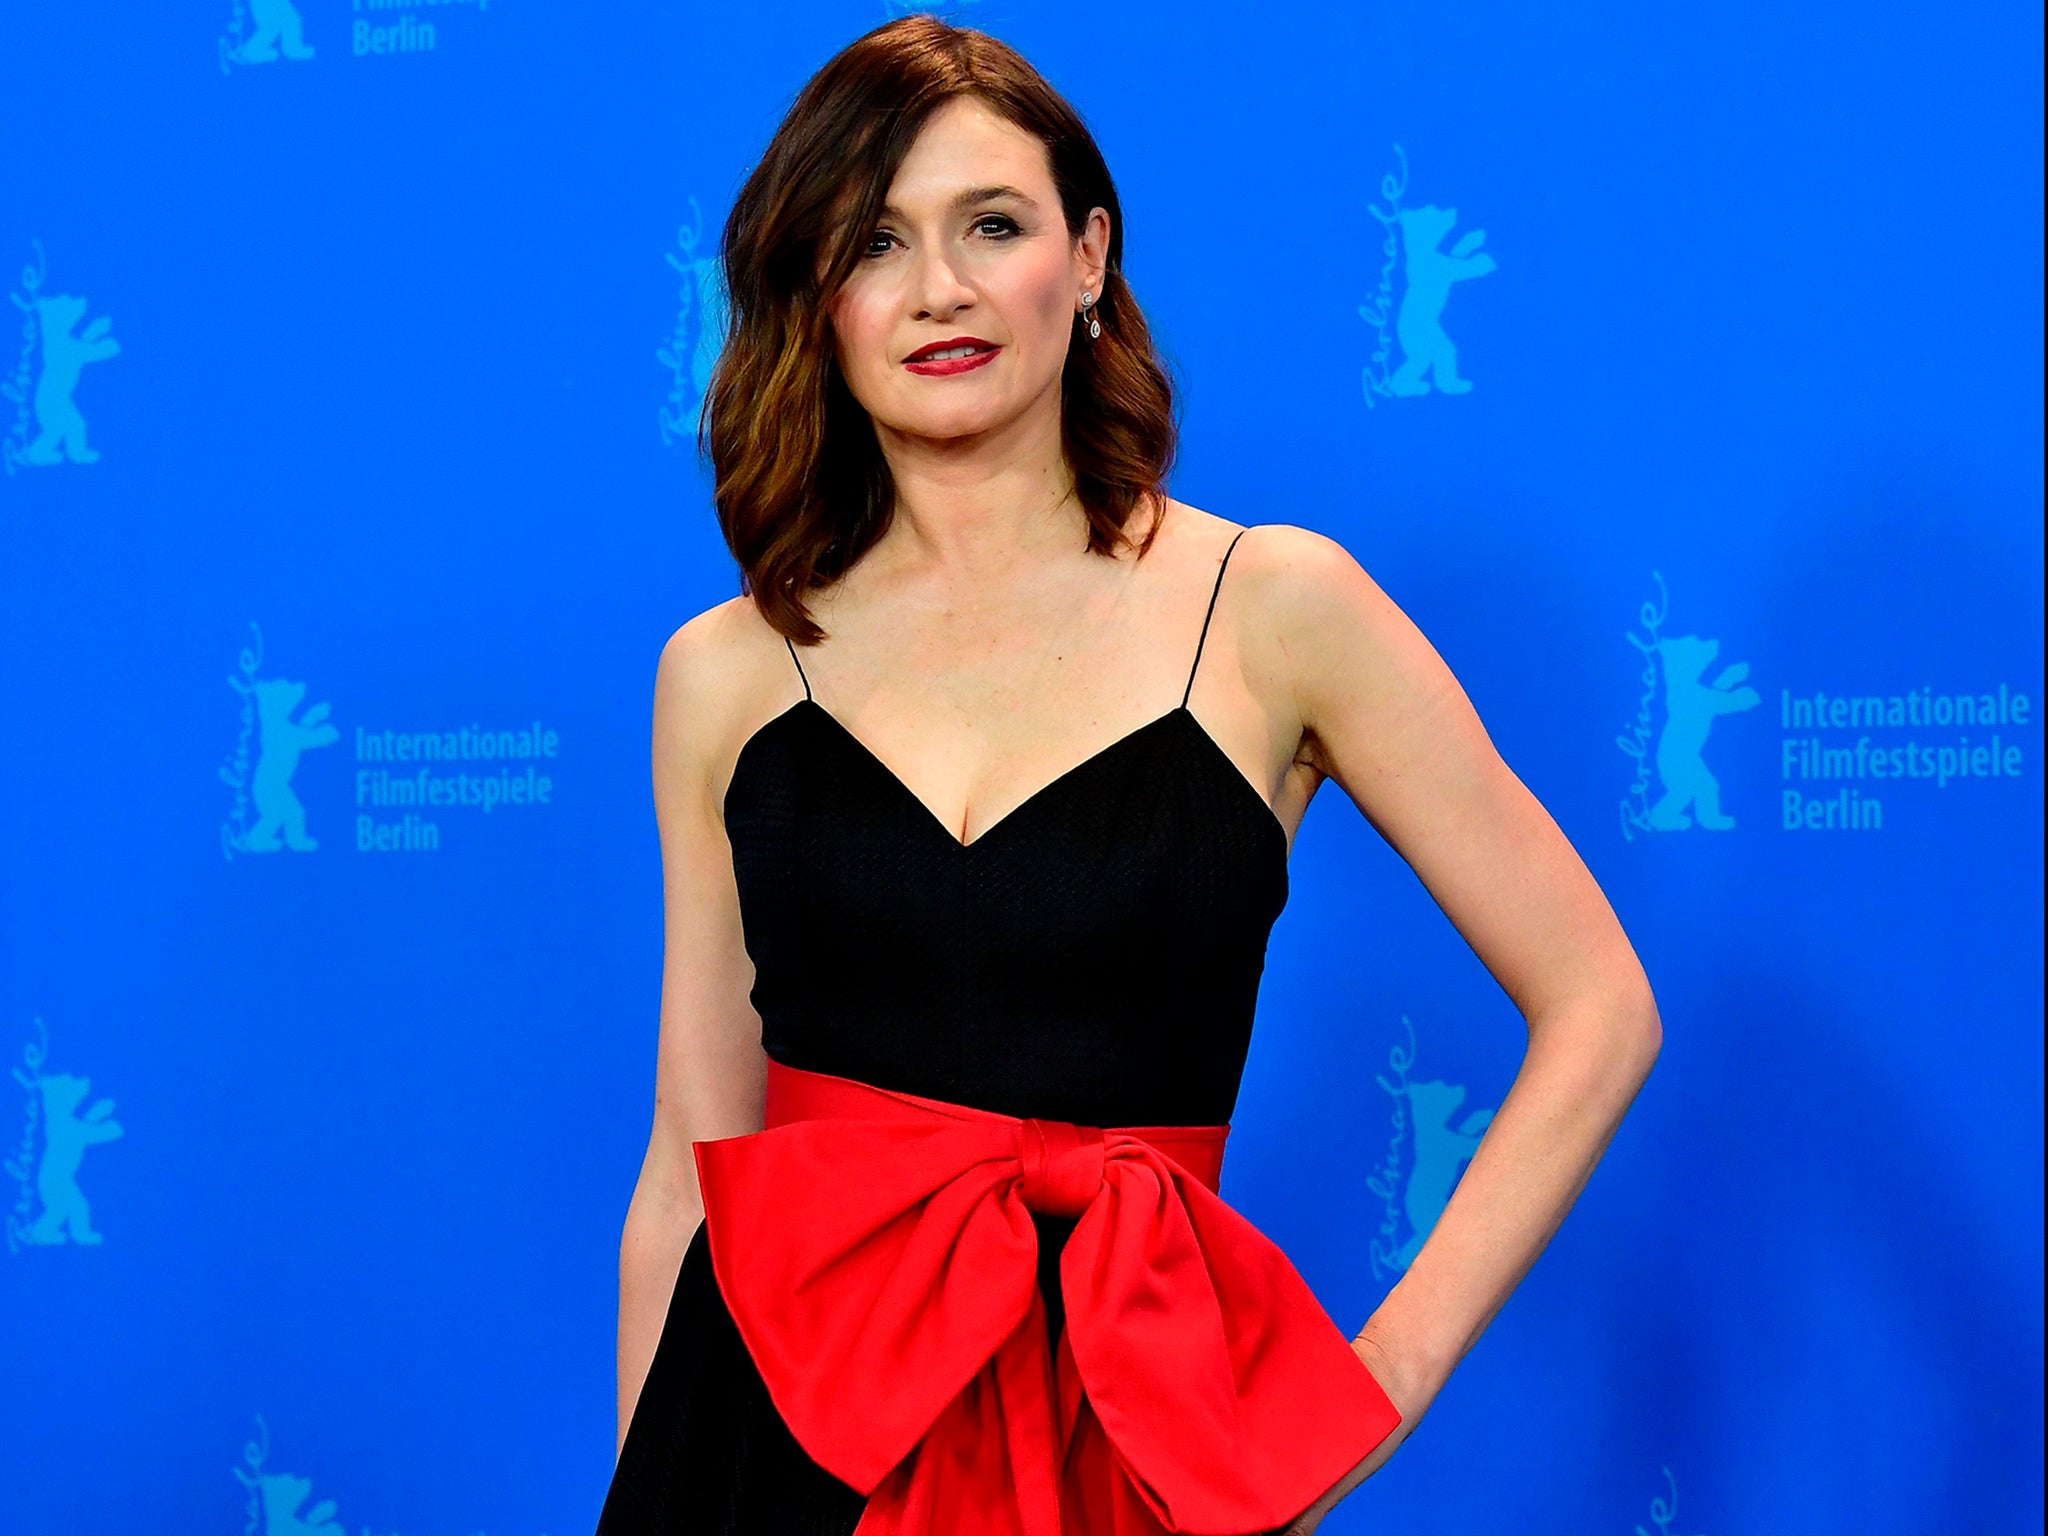 Fappening Pictures Emily Mortimer naked photo 2017